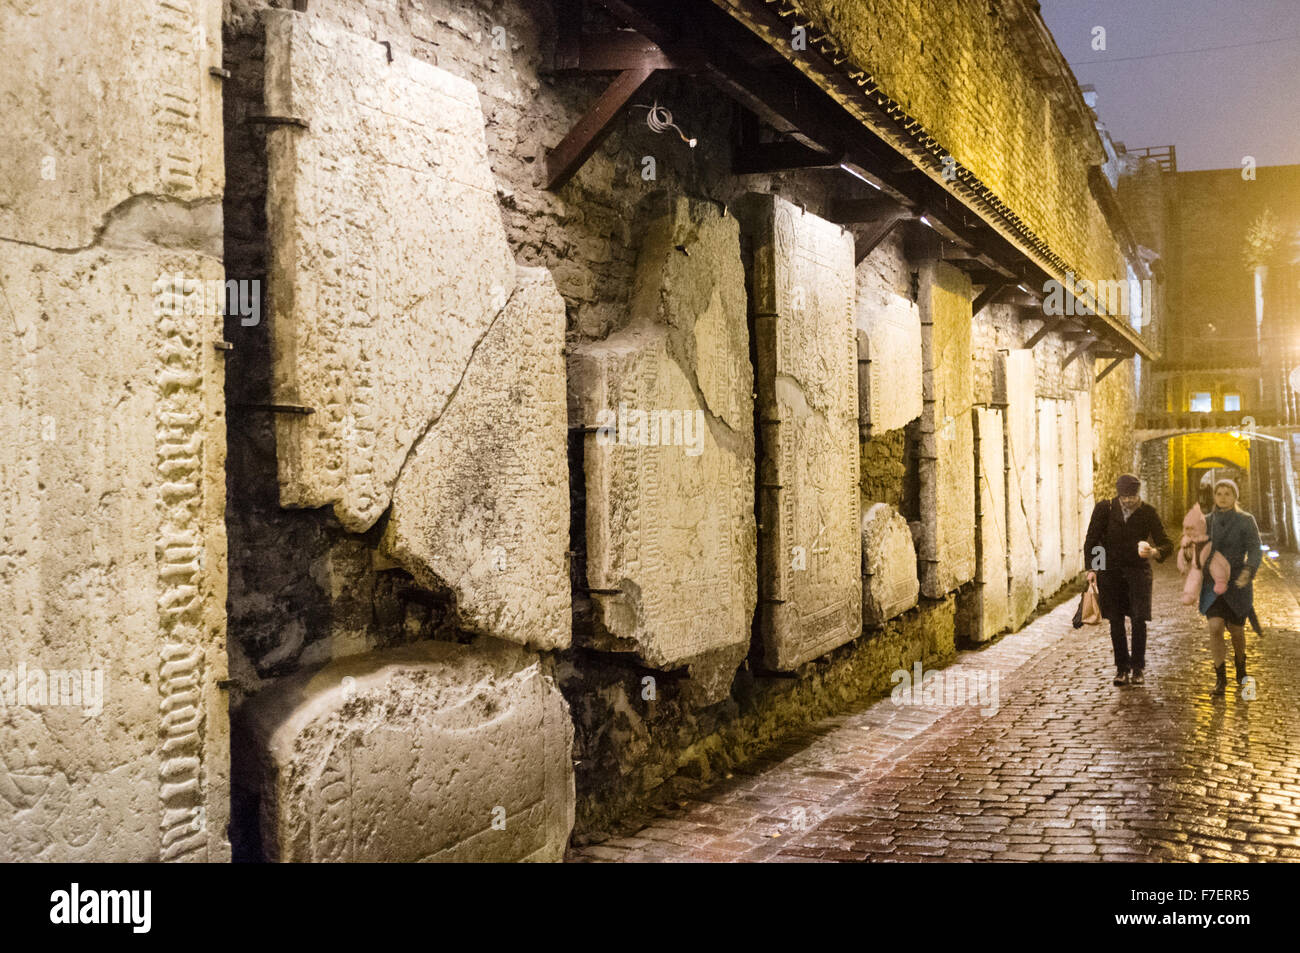 Ancient tombstones at St Catherine's Passage, Tallinn, Estonia - Stock Image